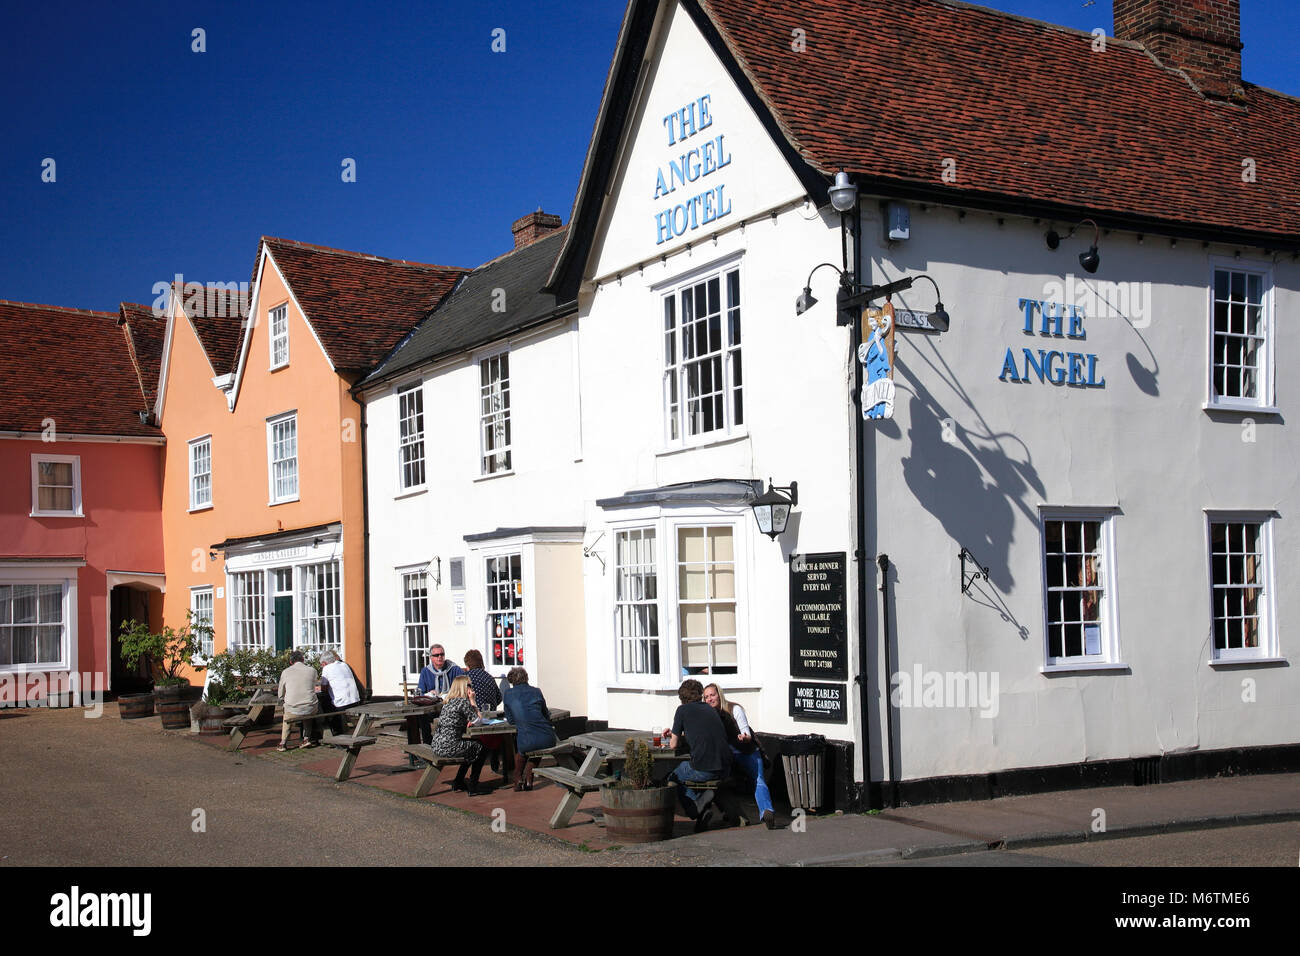 Exterior of the Angel Hotel, Lavenham village, Suffolk County, England, UK - Stock Image